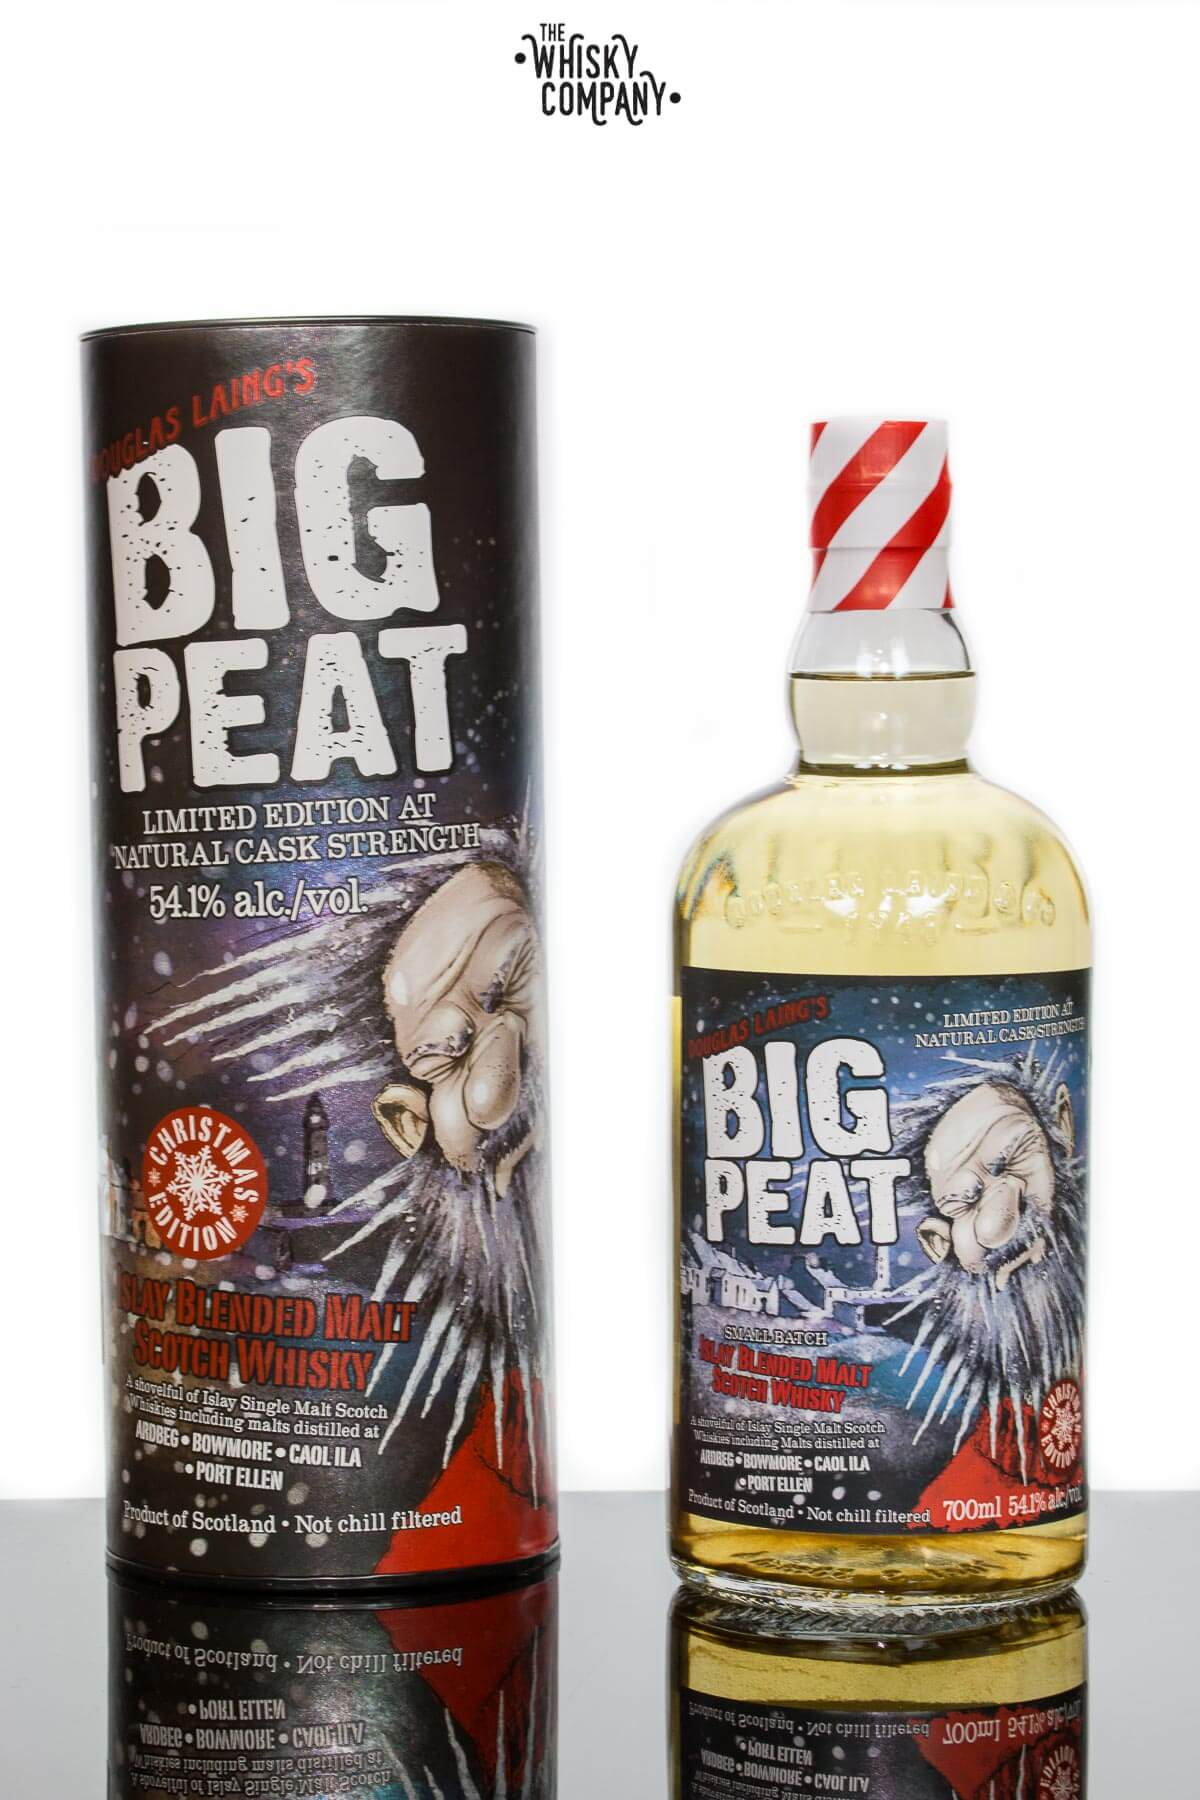 Douglas Laing's Big Peat 2017 Cask Strength Small Batch Release Islay Blended Malt Scotch Whisky (700ml)